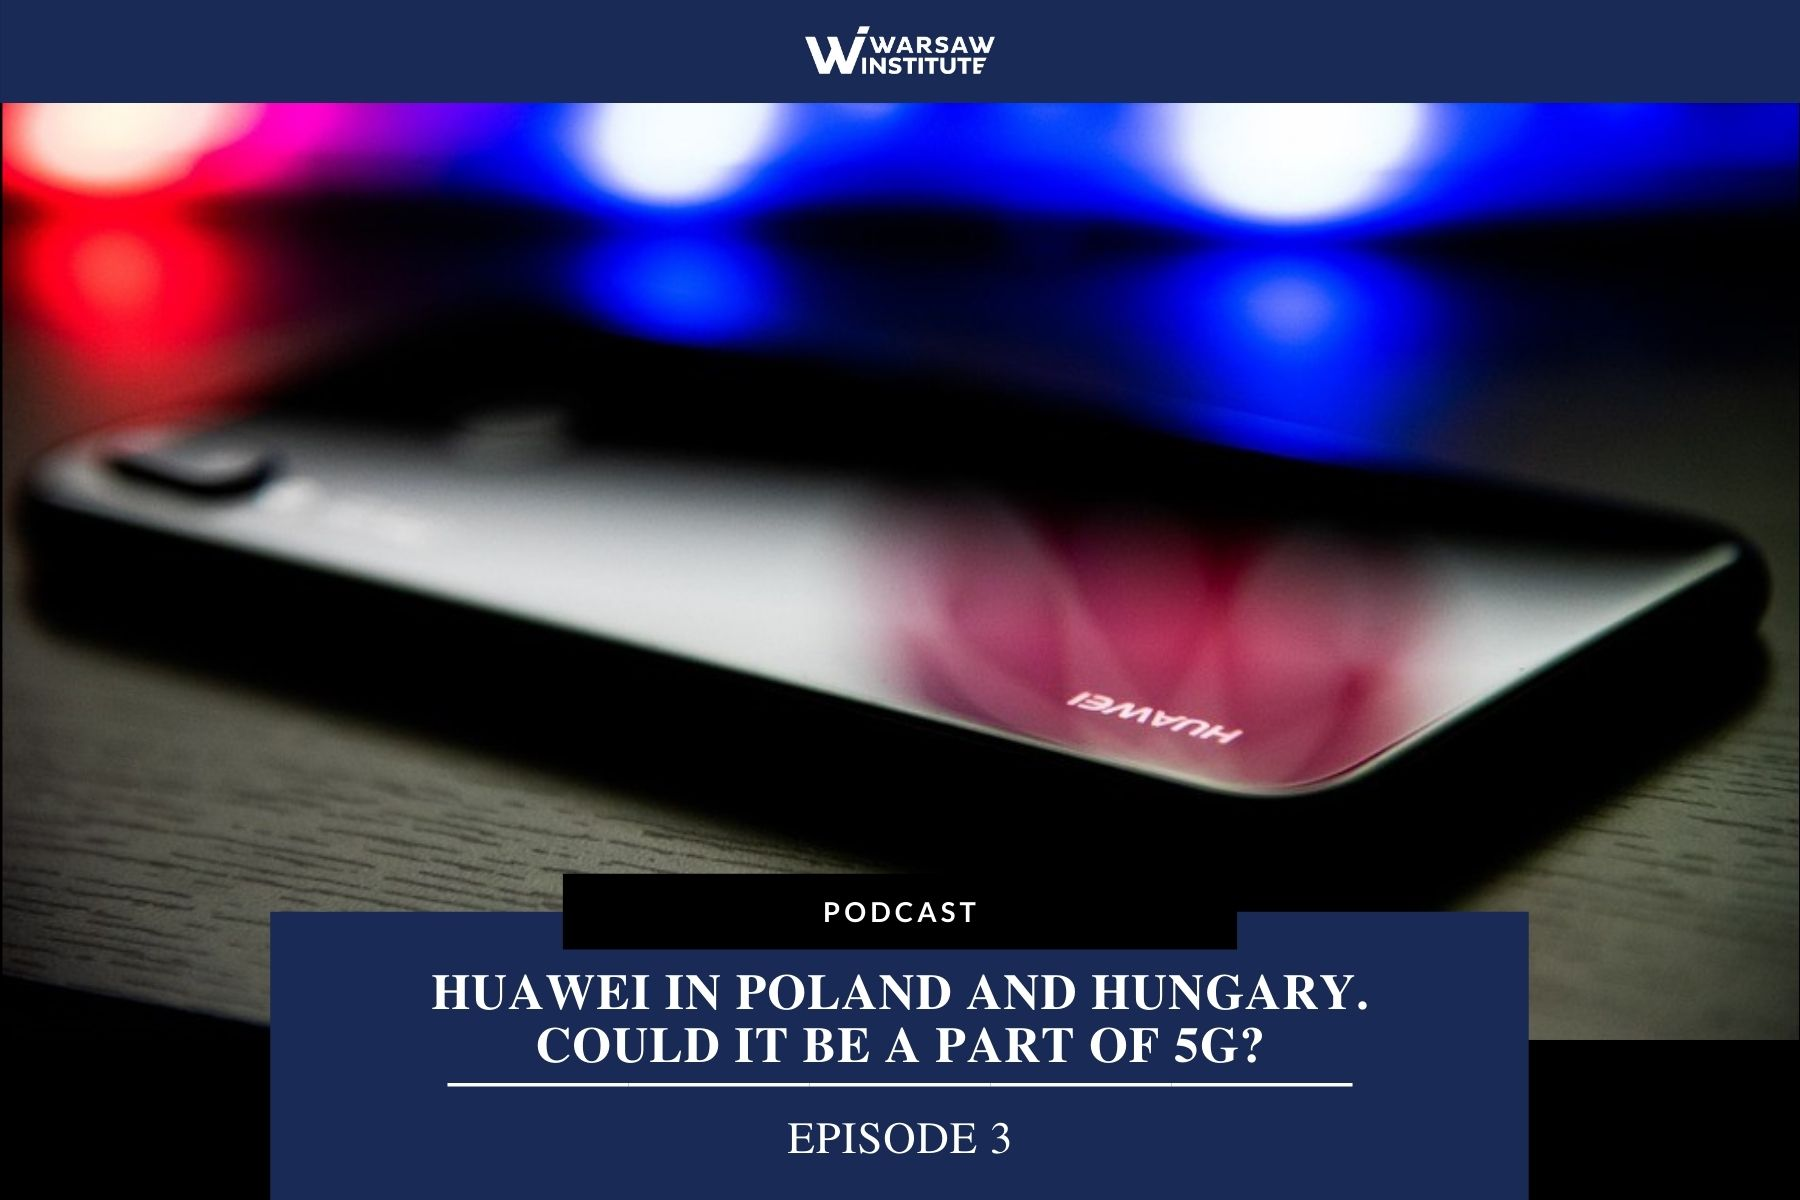 Huawei in Poland and Hungary. Could it be a part of 5G? – Podcast